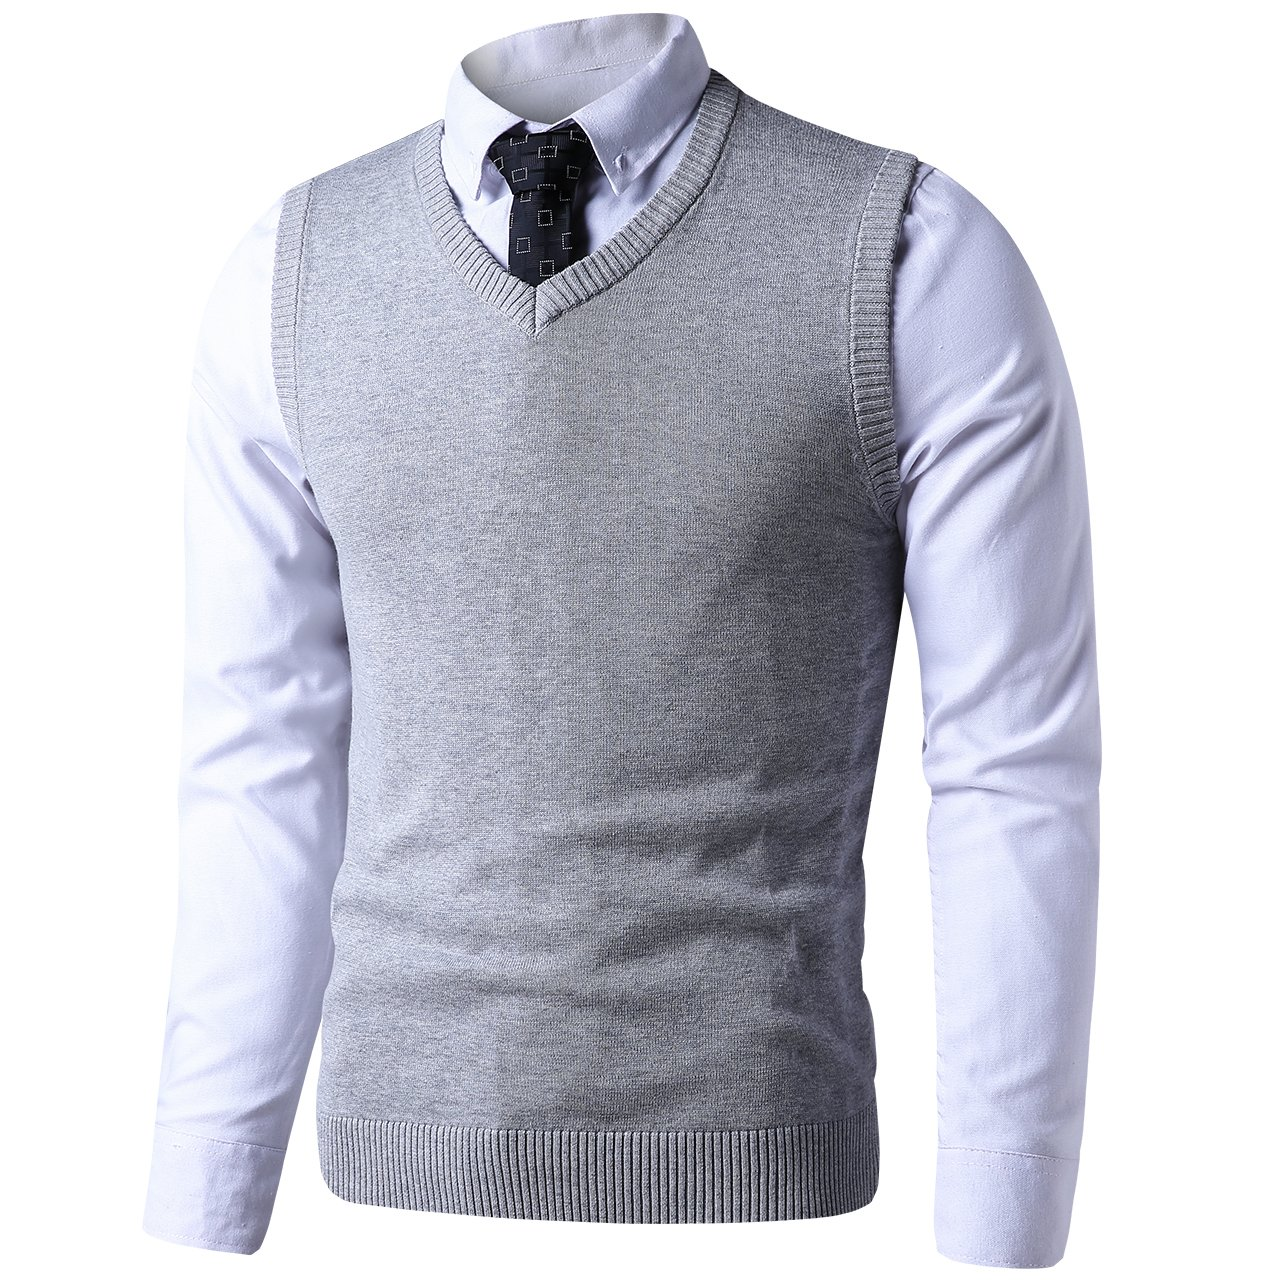 LTIFONE Mens Slim Fit V Neck Sweater Vest Basic Plain Short Sleeve Sweater Pullover Sleeveless Sweaters with Ribbing Edge(Grey,M)